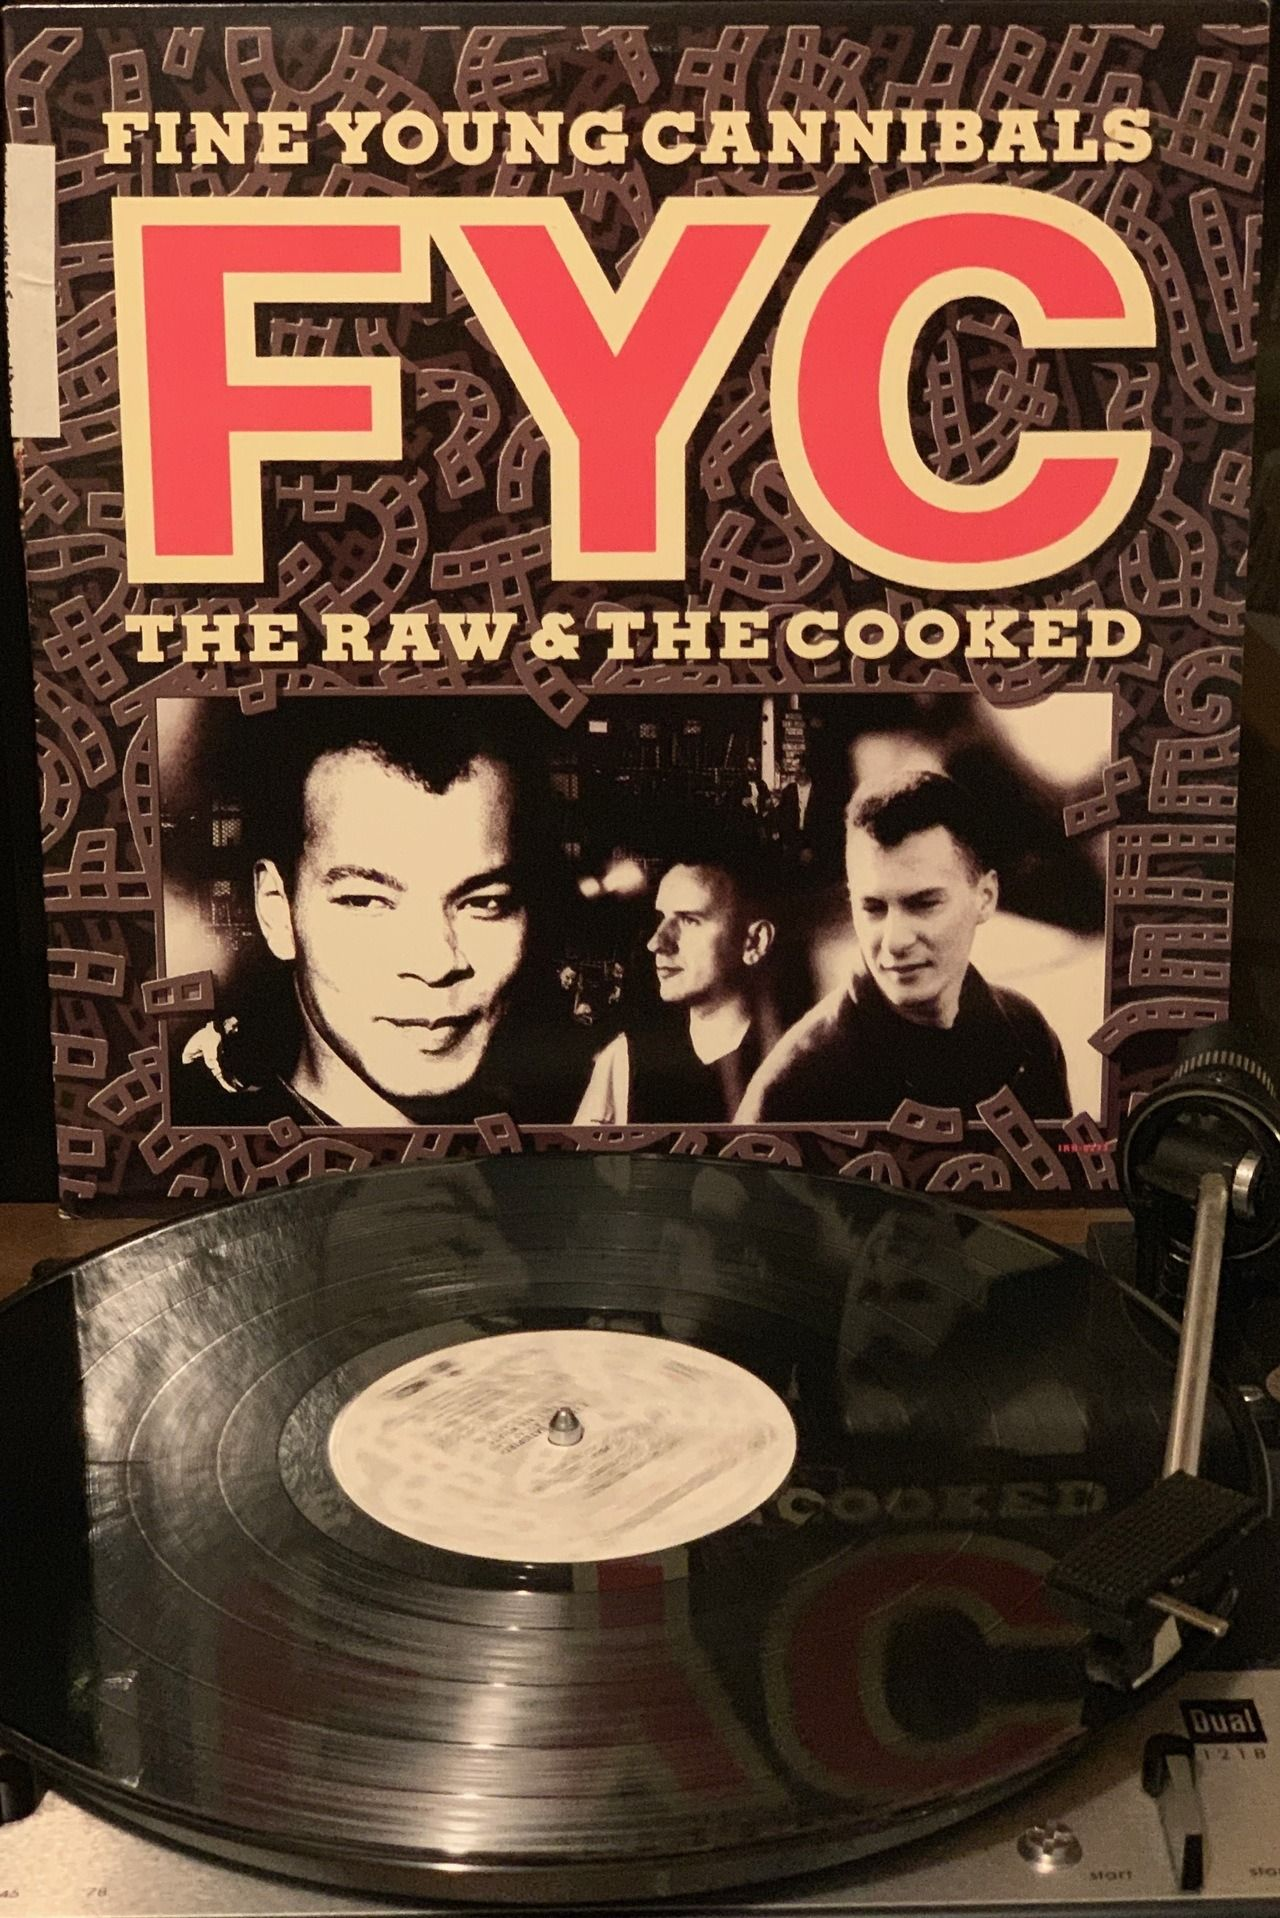 Fine Young Cannibals The Raw The Cooked 1989 Fyc S Second And Final Lp A Mix Of New Wave Pop Soul And Dance Mu Dance Music Album Of The Year Wave Dance